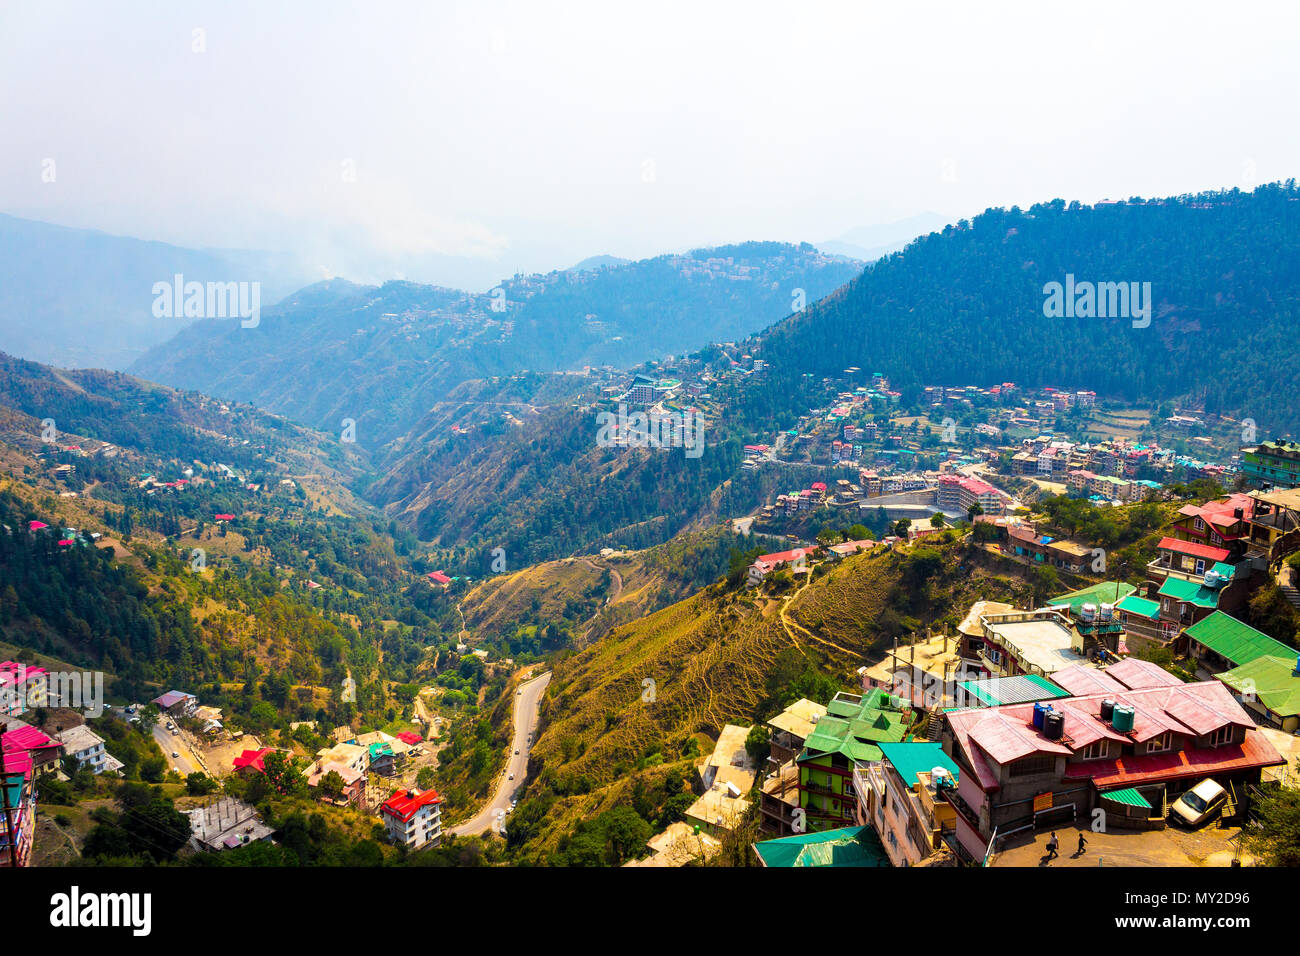 Mashobra is a lush green expanse in Himachal Pradesh, tucked away at a height of about 7700 feet. - Stock Image